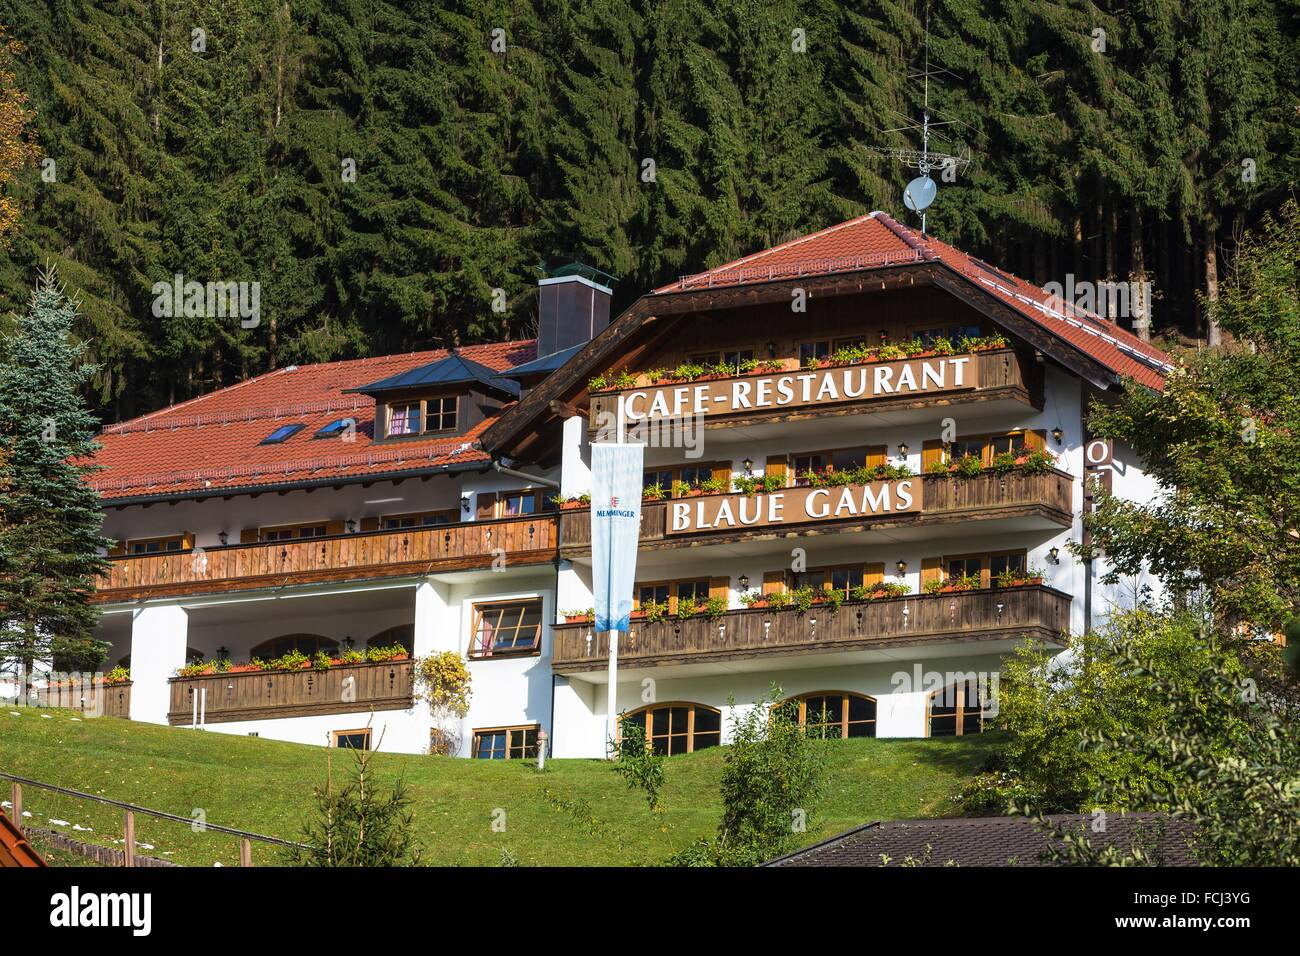 Picturesque restaurant ´Blaue Gams´ in Ettal, Bavaria, Germany, Europe - Stock Image